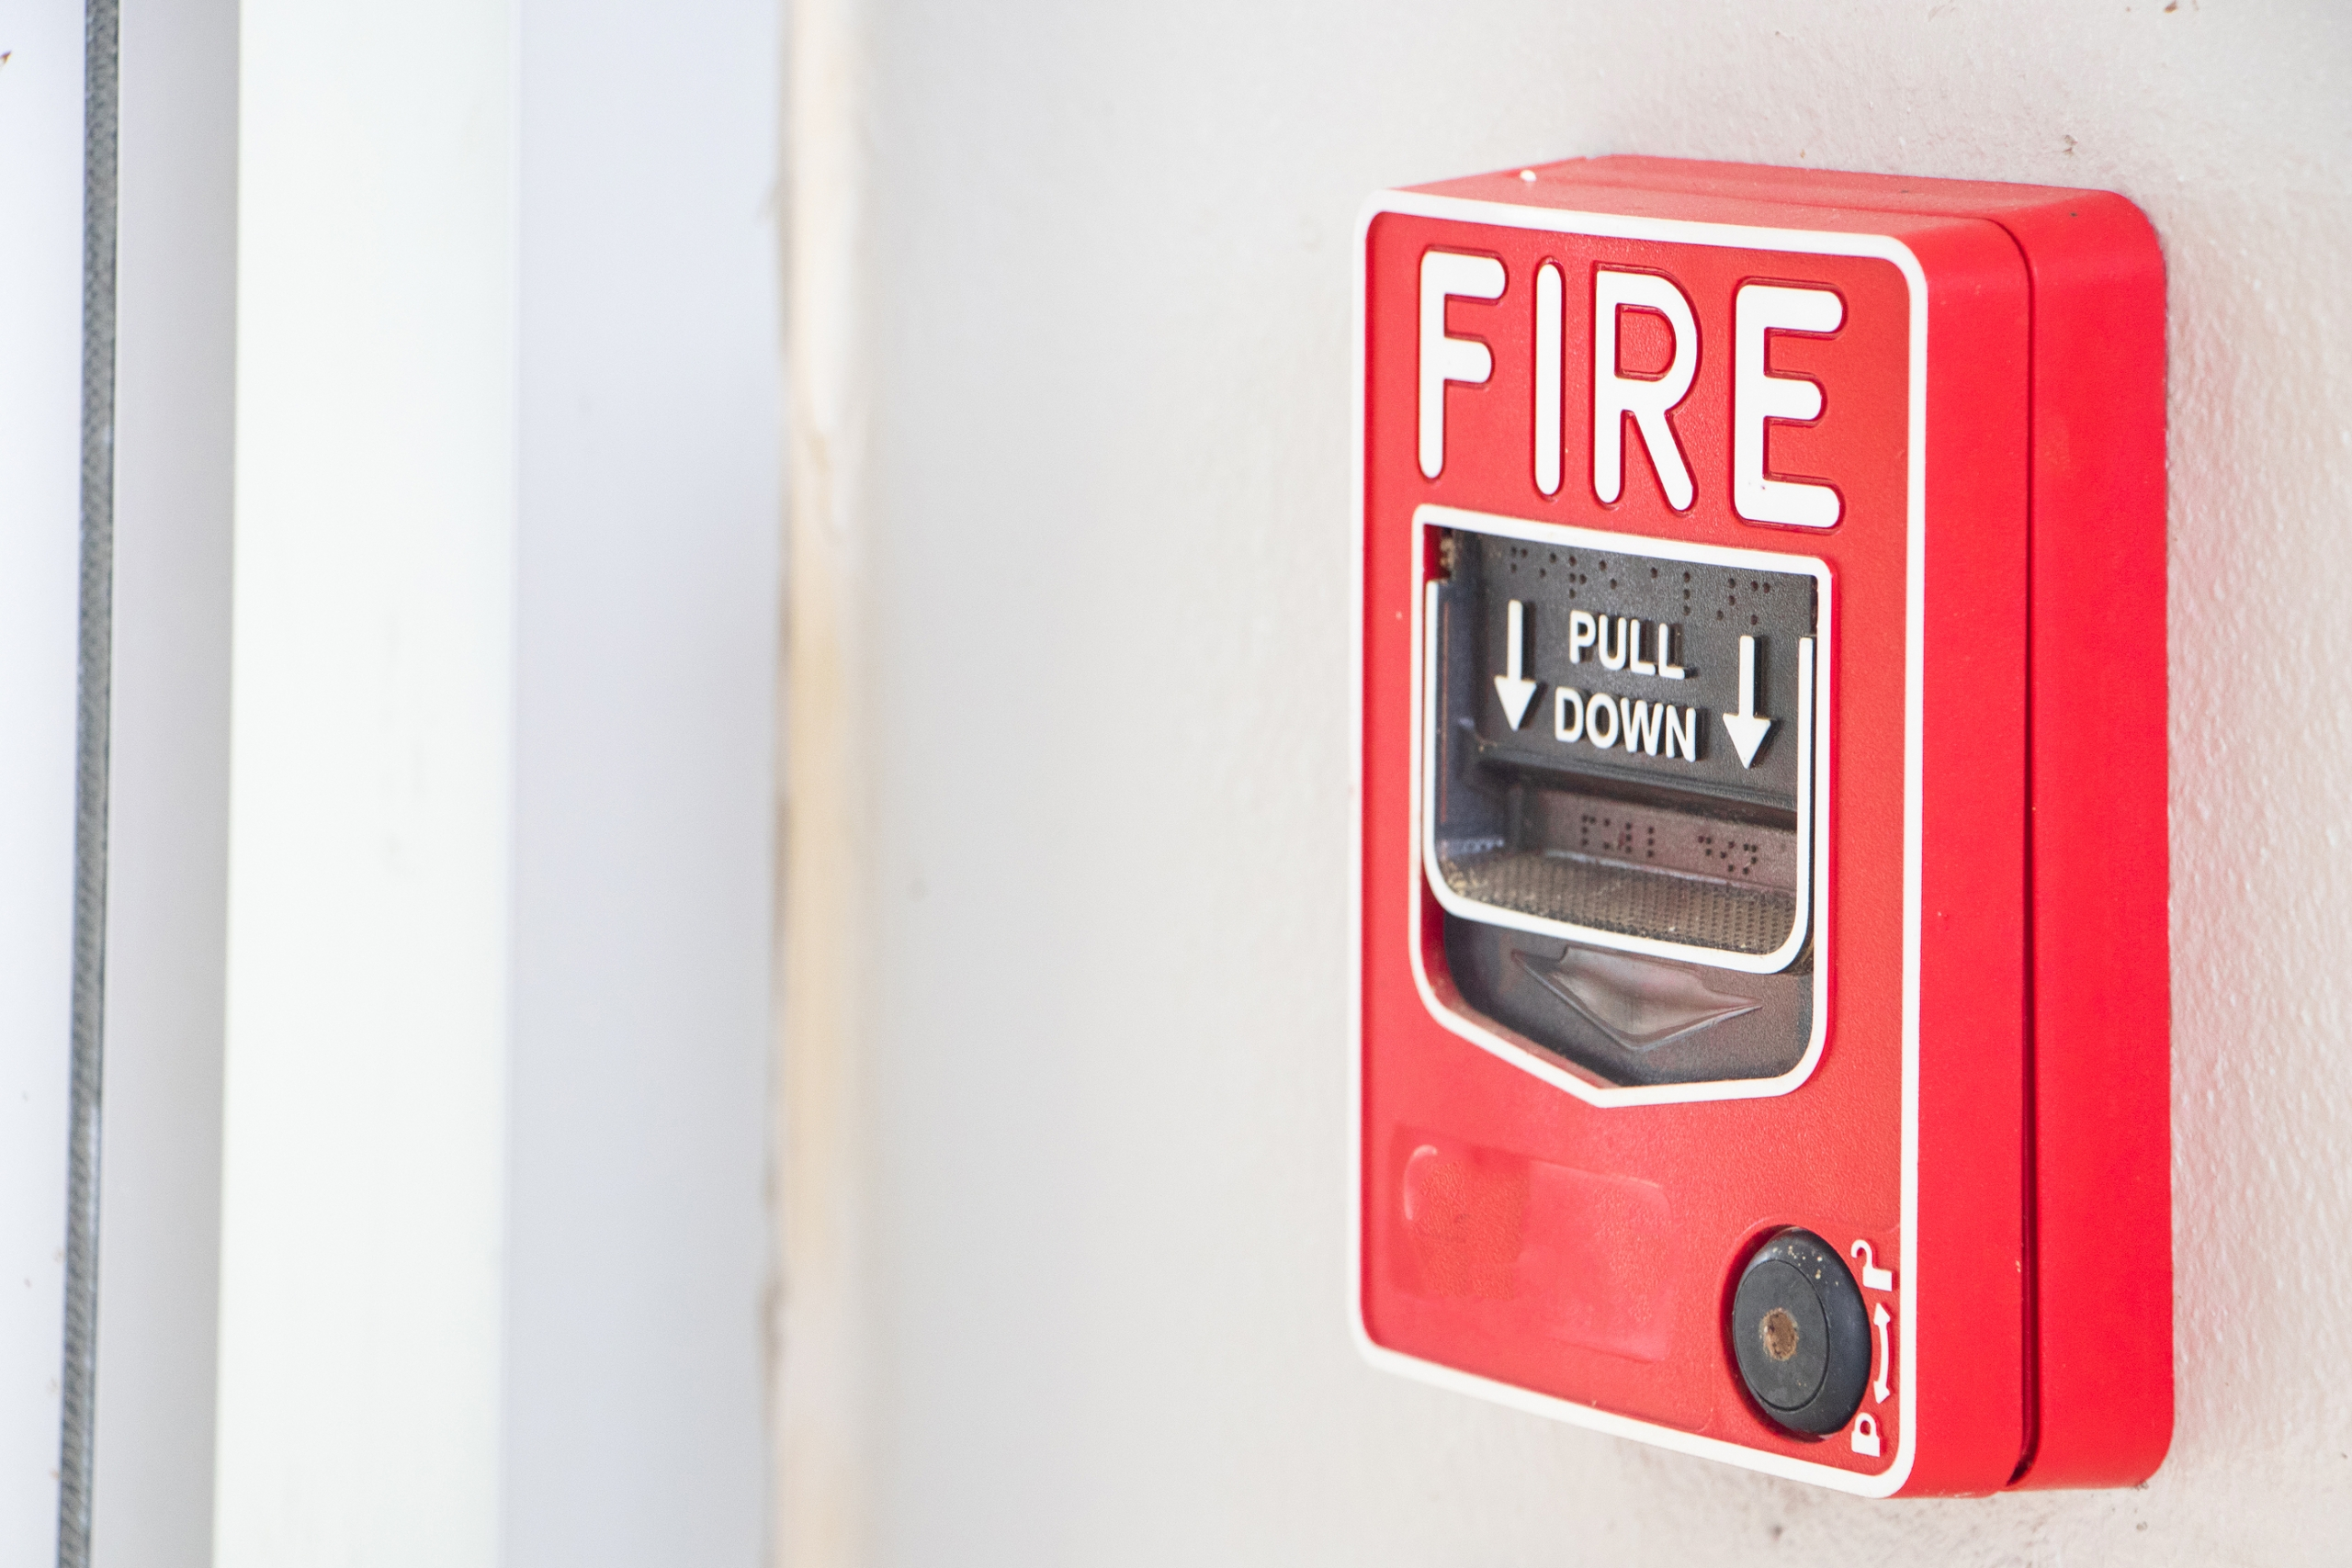 red-fire-alarm-system-on-wall-scaled